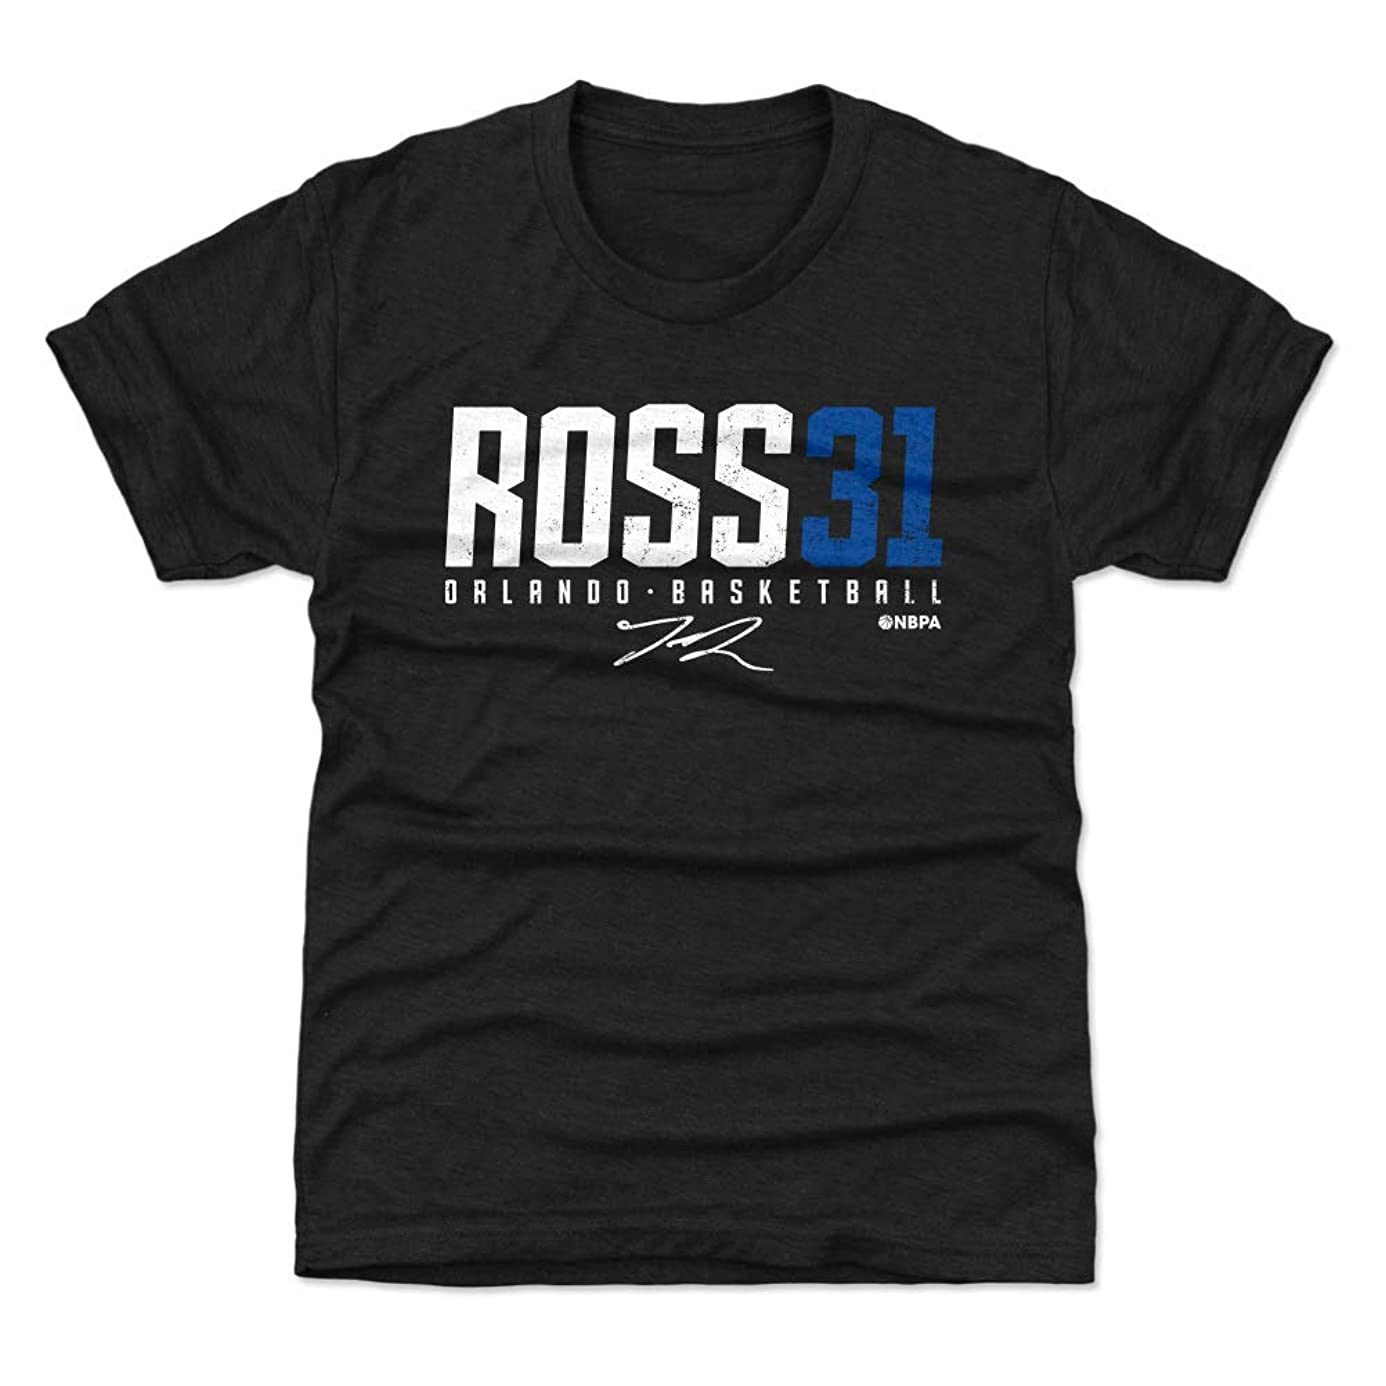 500 LEVEL Terrence Ross Orlando Basketball Kids Shirt - Terrence Ross Elite